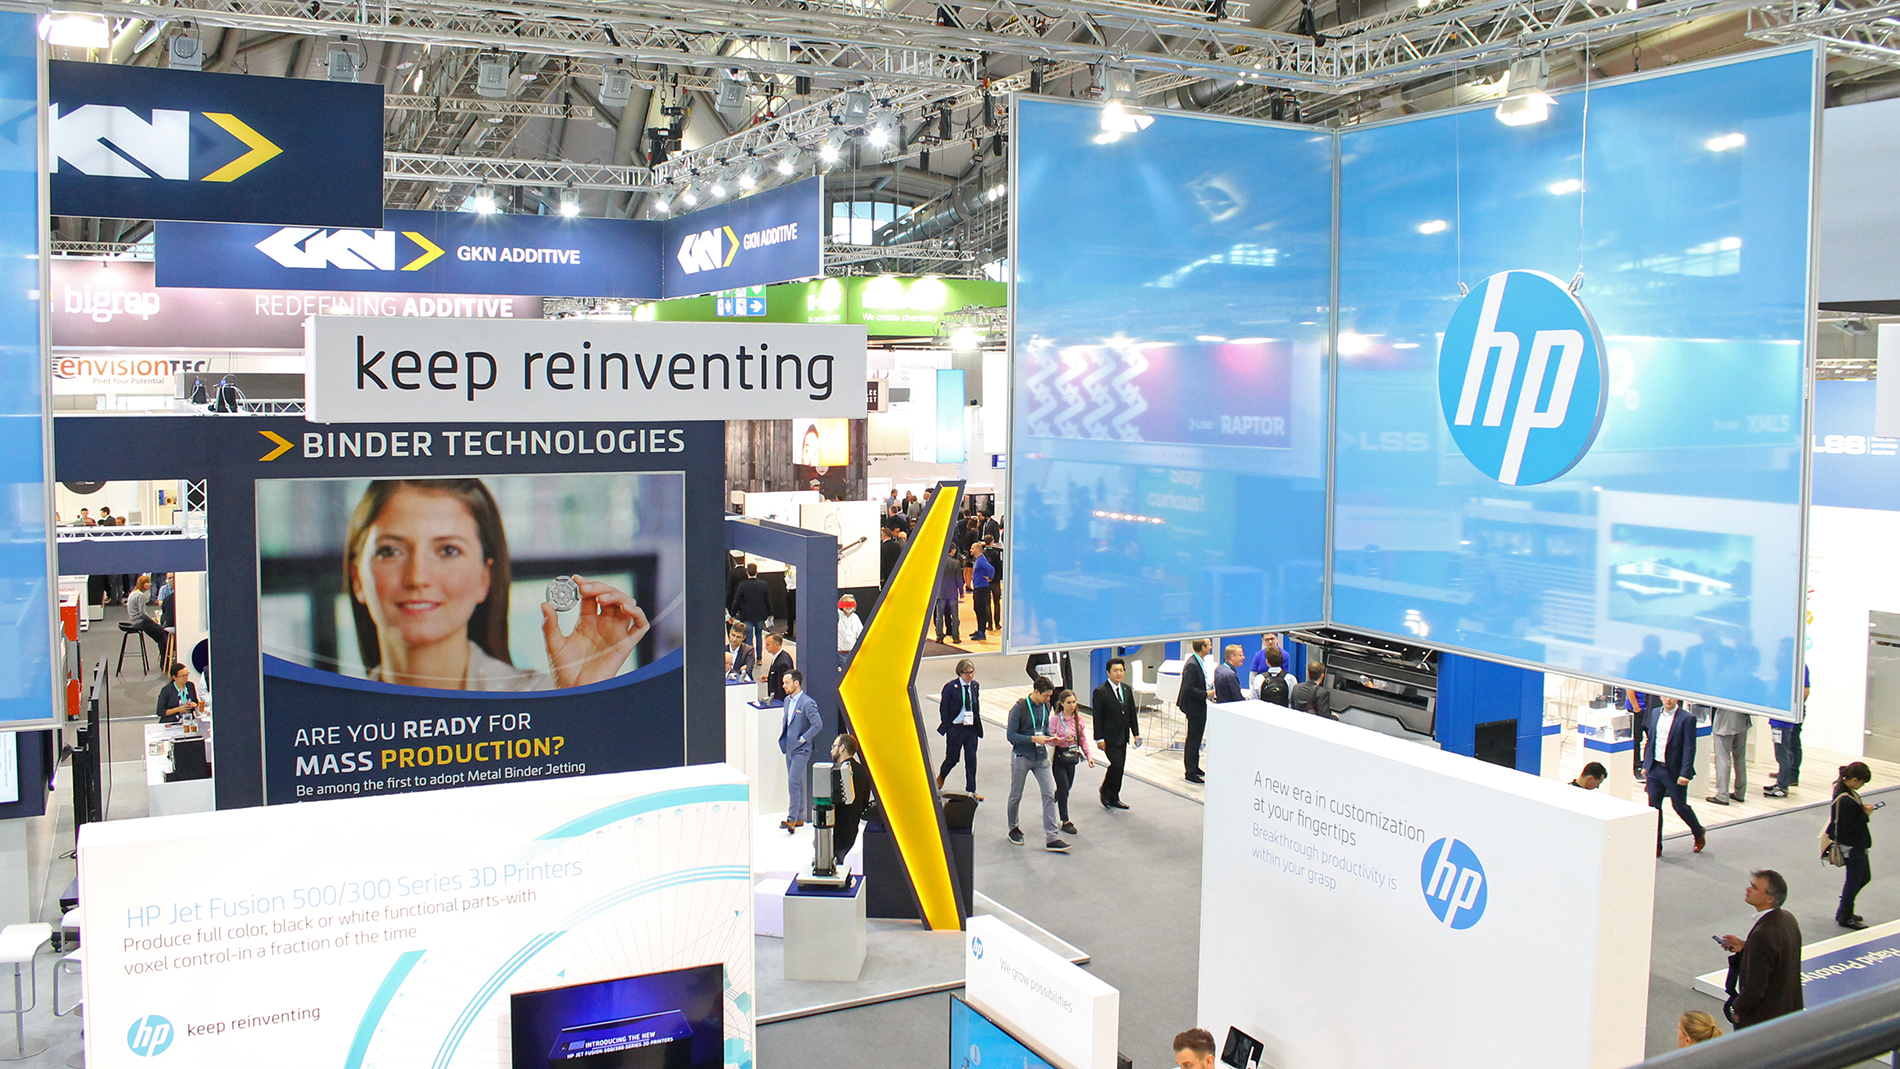 D Printing Exhibition Germany : Formnext u2013 international exhibition and conference on the next